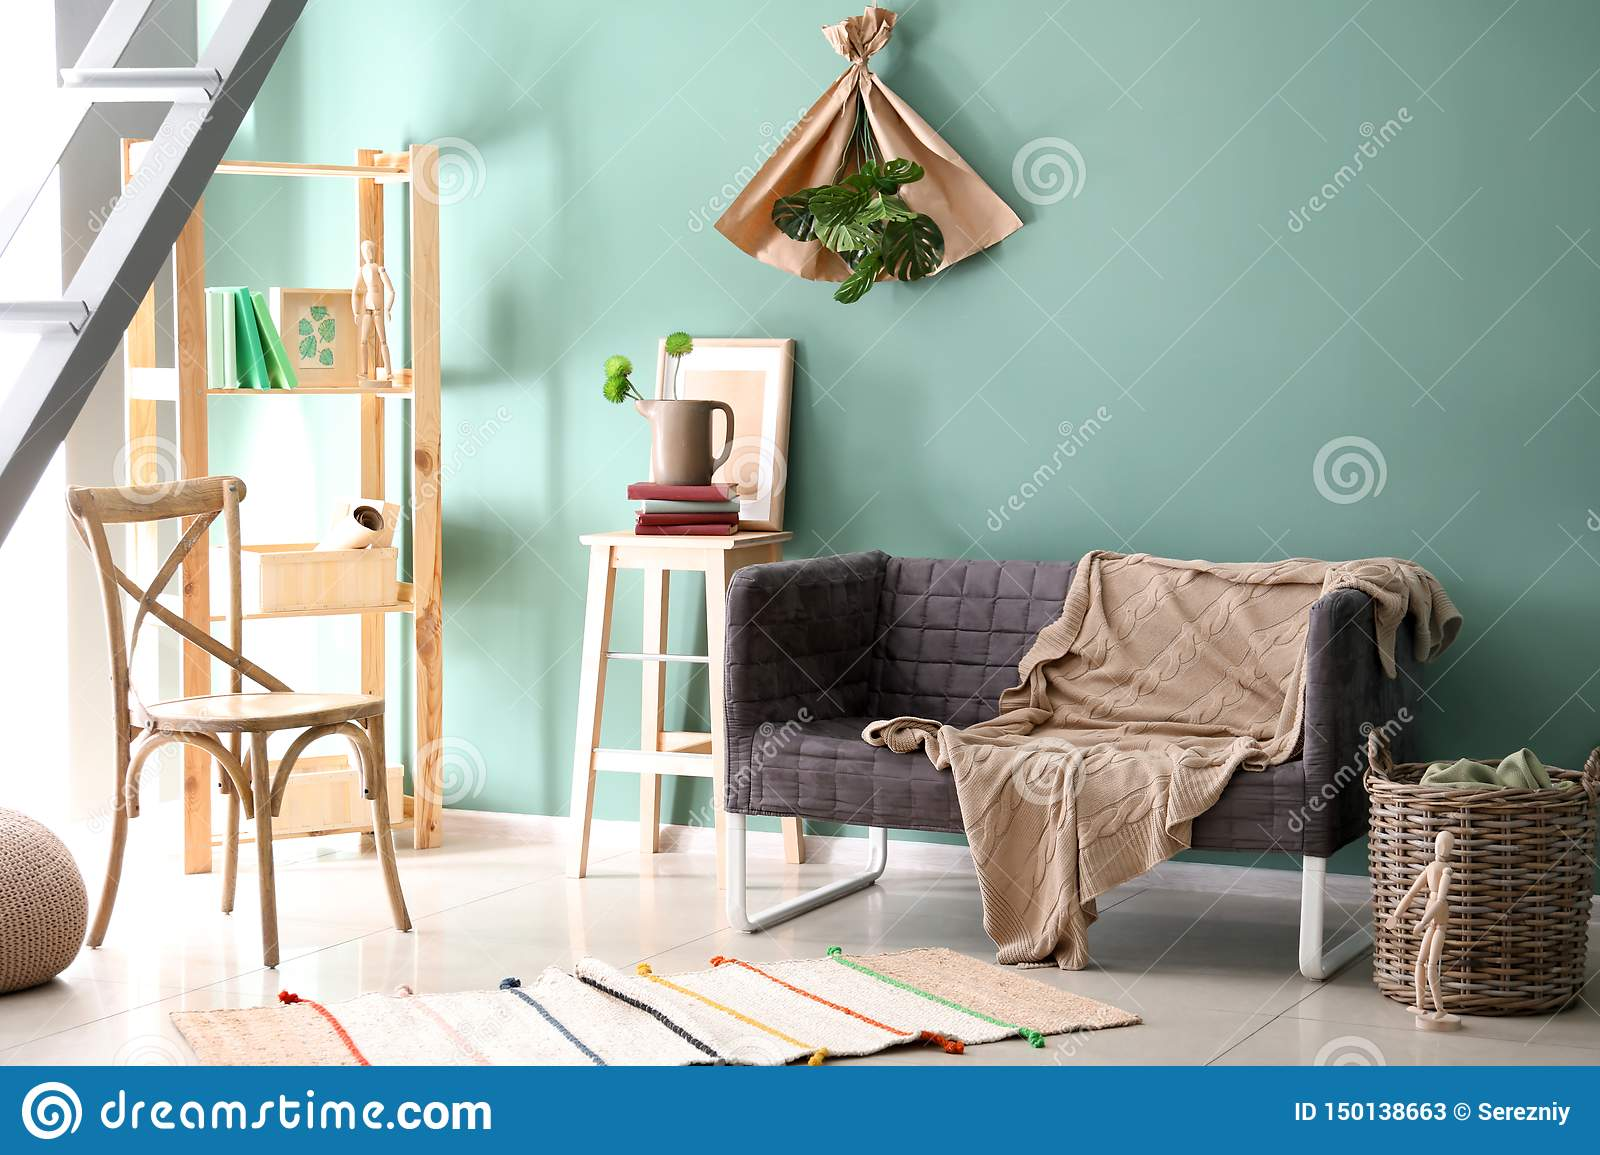 Interior of living room with comfortable sofa near color wall